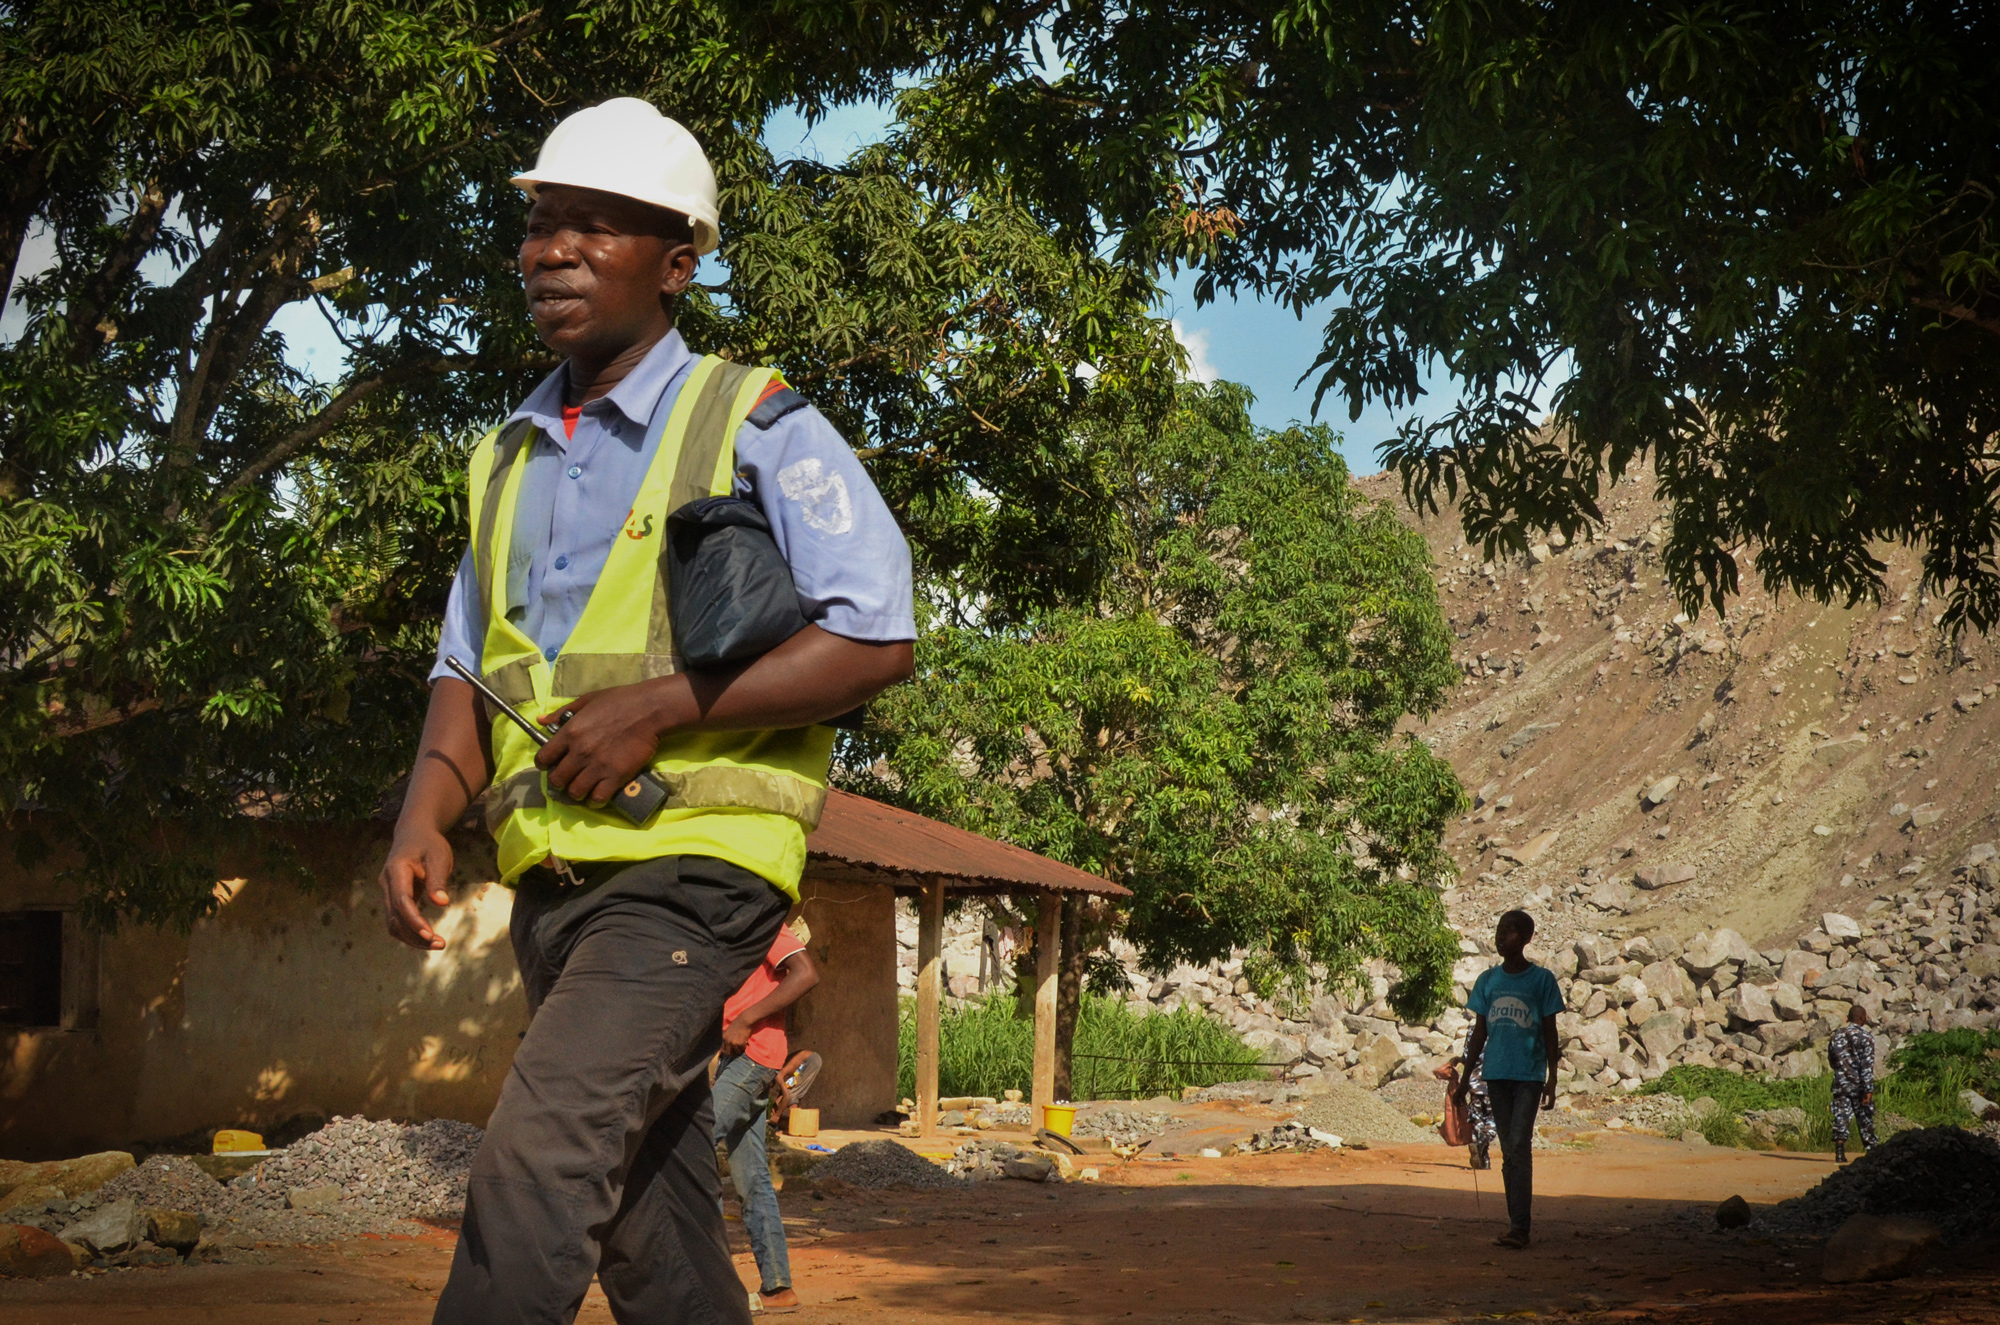 Koidu residents living within the mine's 500-meter safety zone are escorted by police and private security officers to safety checkpoints, where they wait for the mine's bi-weekly blasting to pass.